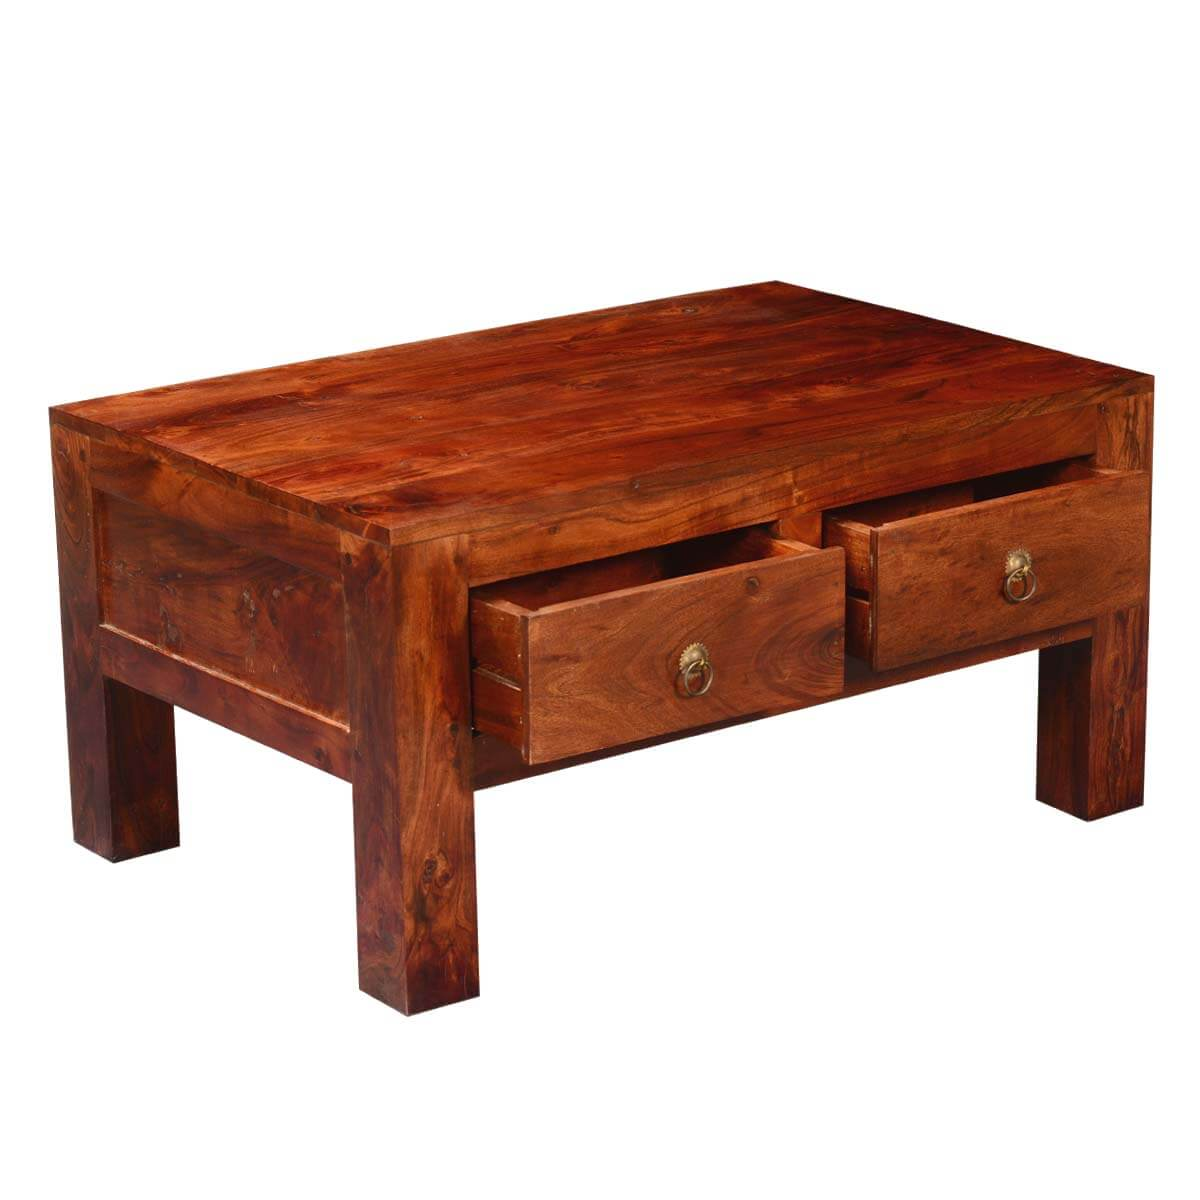 Modern simplicity acacia wood drawer chest coffee table